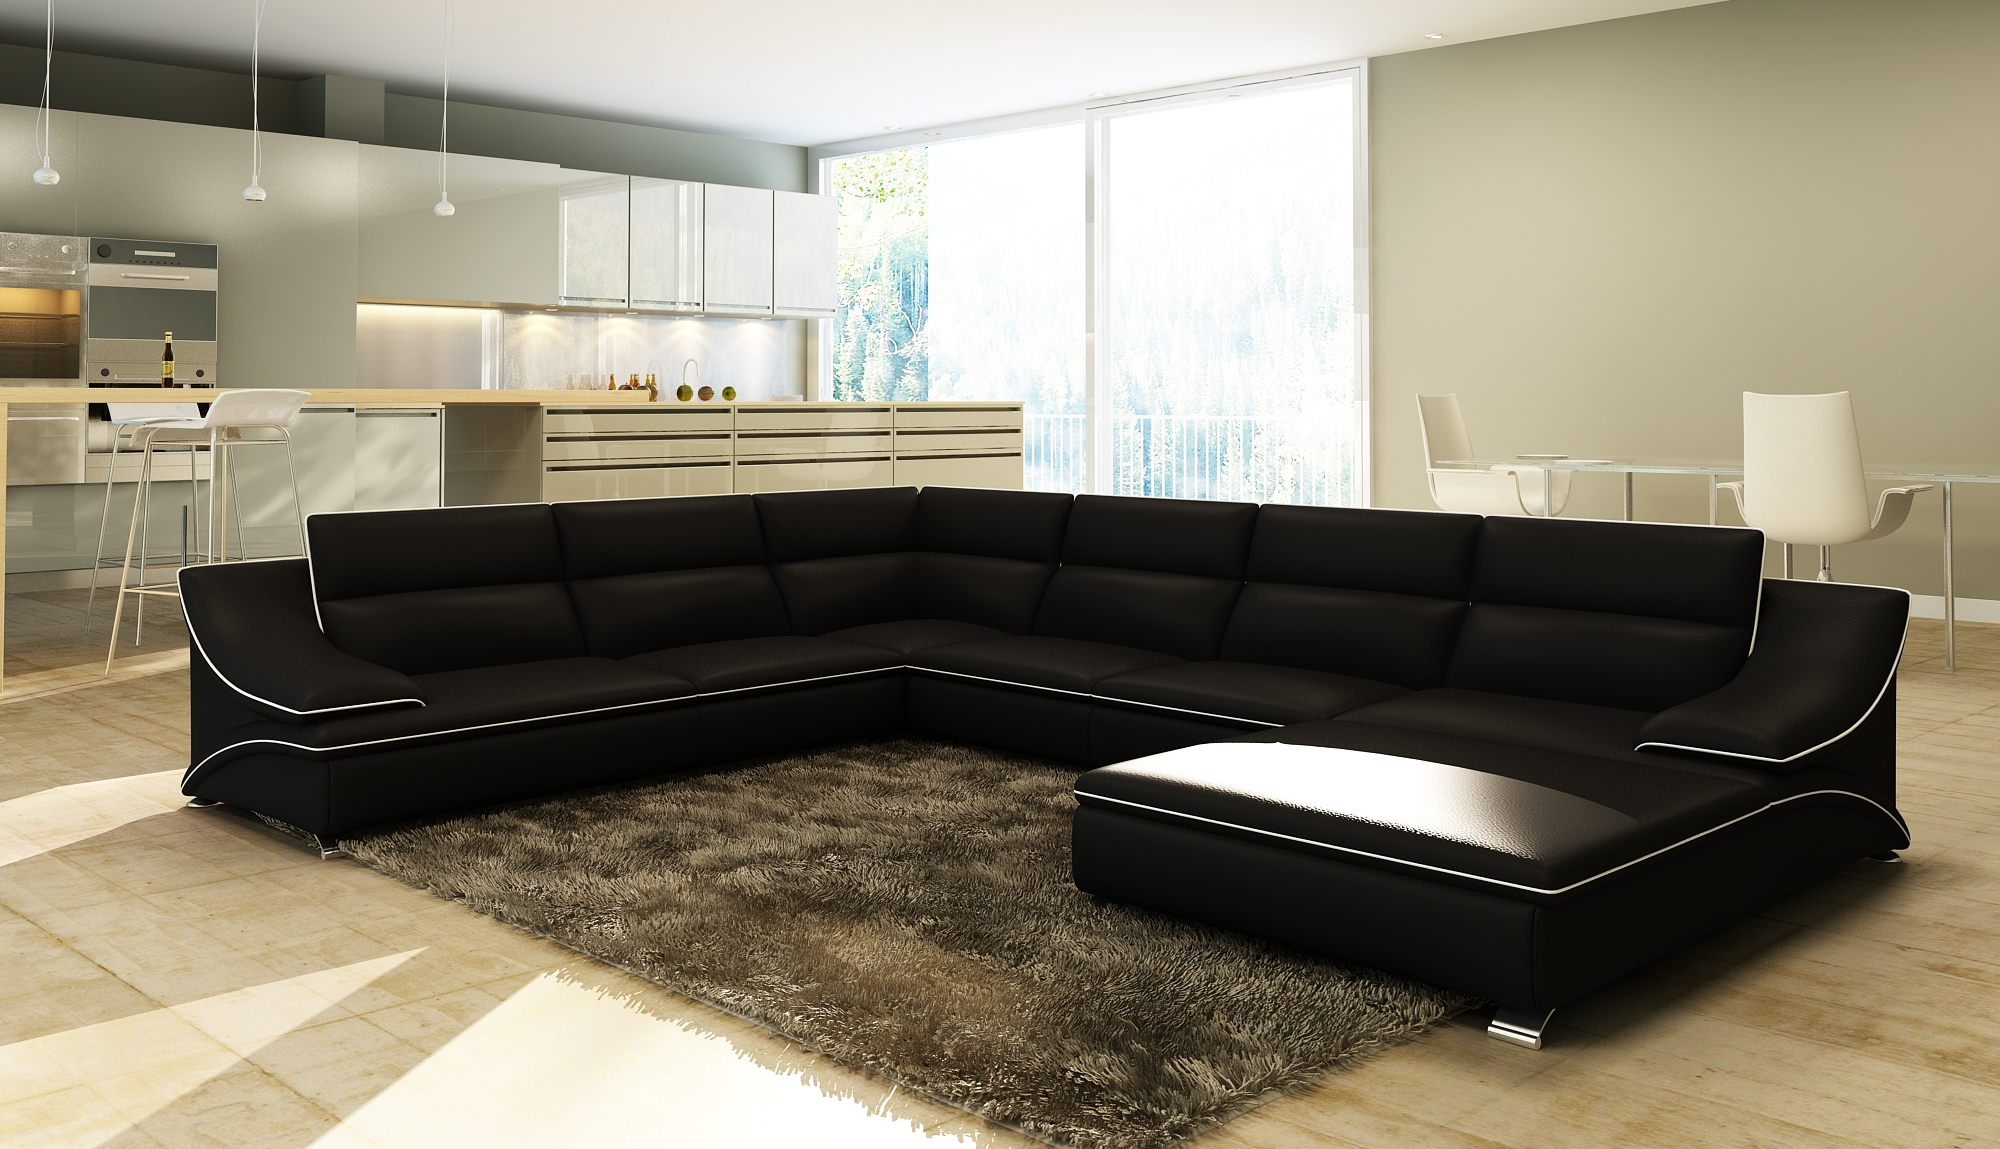 canape d angle 8 10 places royal sofa id e de canap et meuble maison. Black Bedroom Furniture Sets. Home Design Ideas